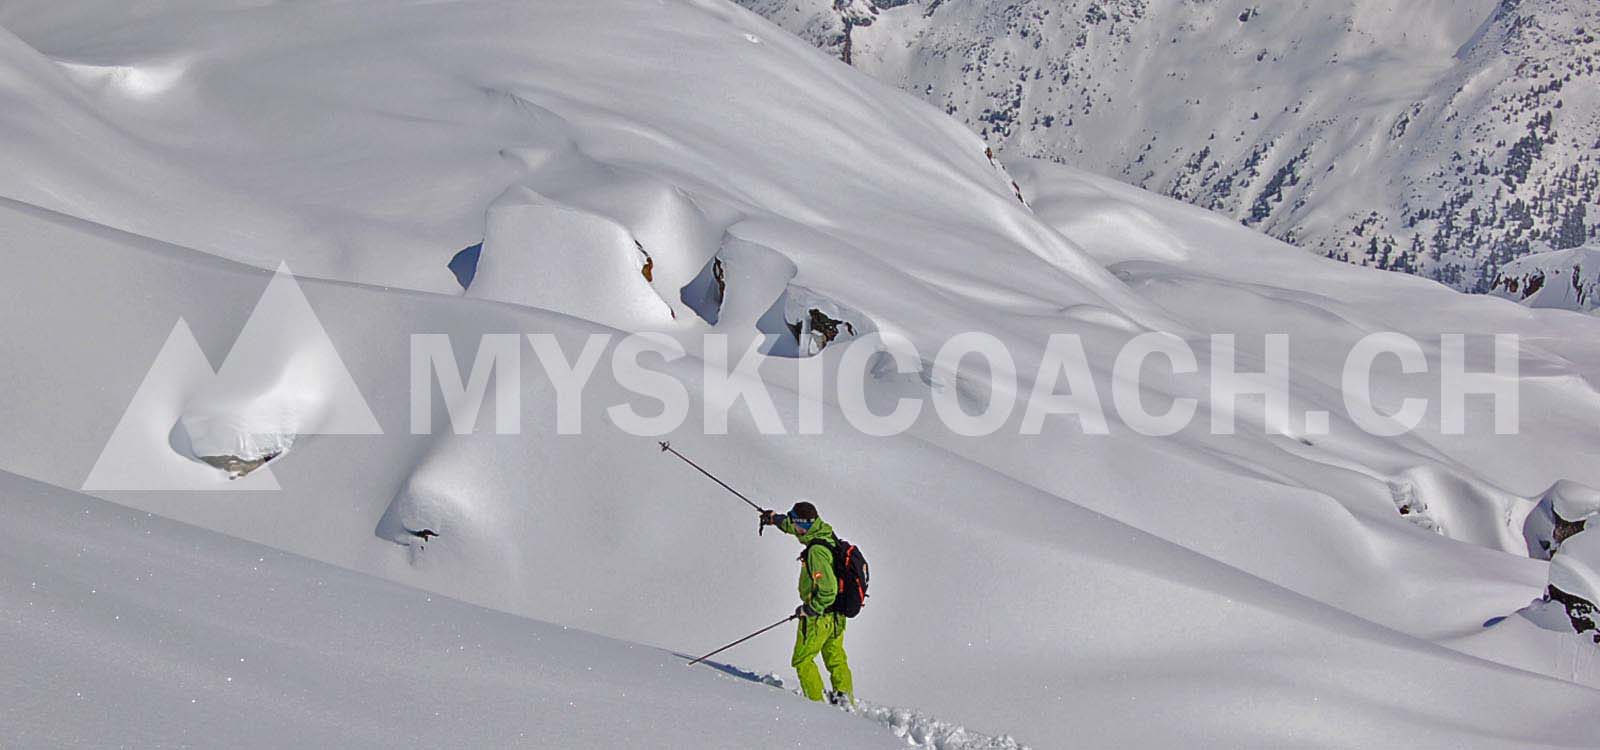 FORMATION FREERIDE ¦ cours prive freeride hors piste adulte ¦ MySkiCoach.ch